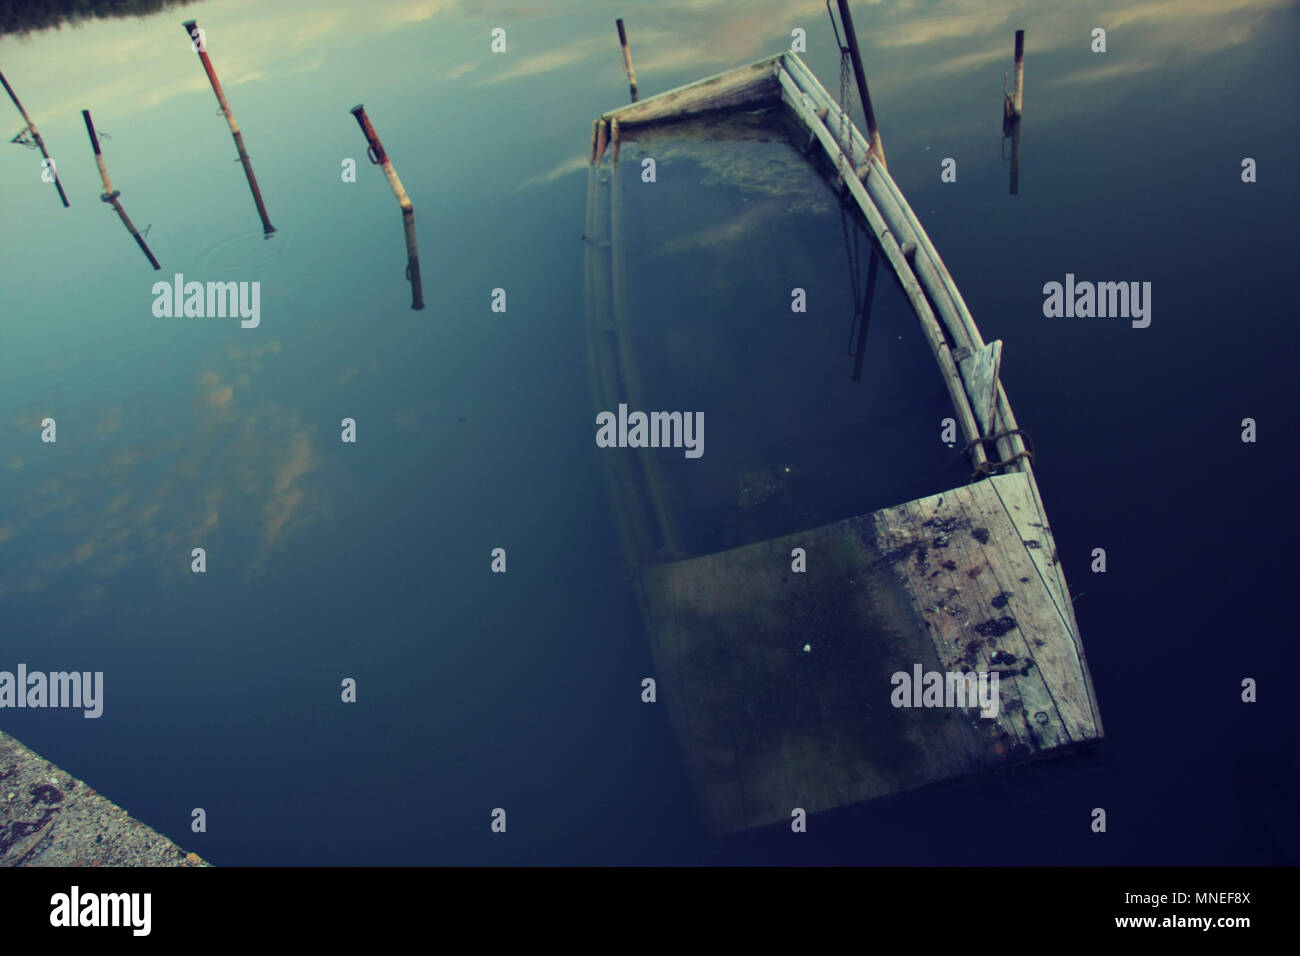 Close look of an old wood floating fishing boat what is forgotten and almost sunk into the lake. Rusty iron rods standing around it. - Stock Image